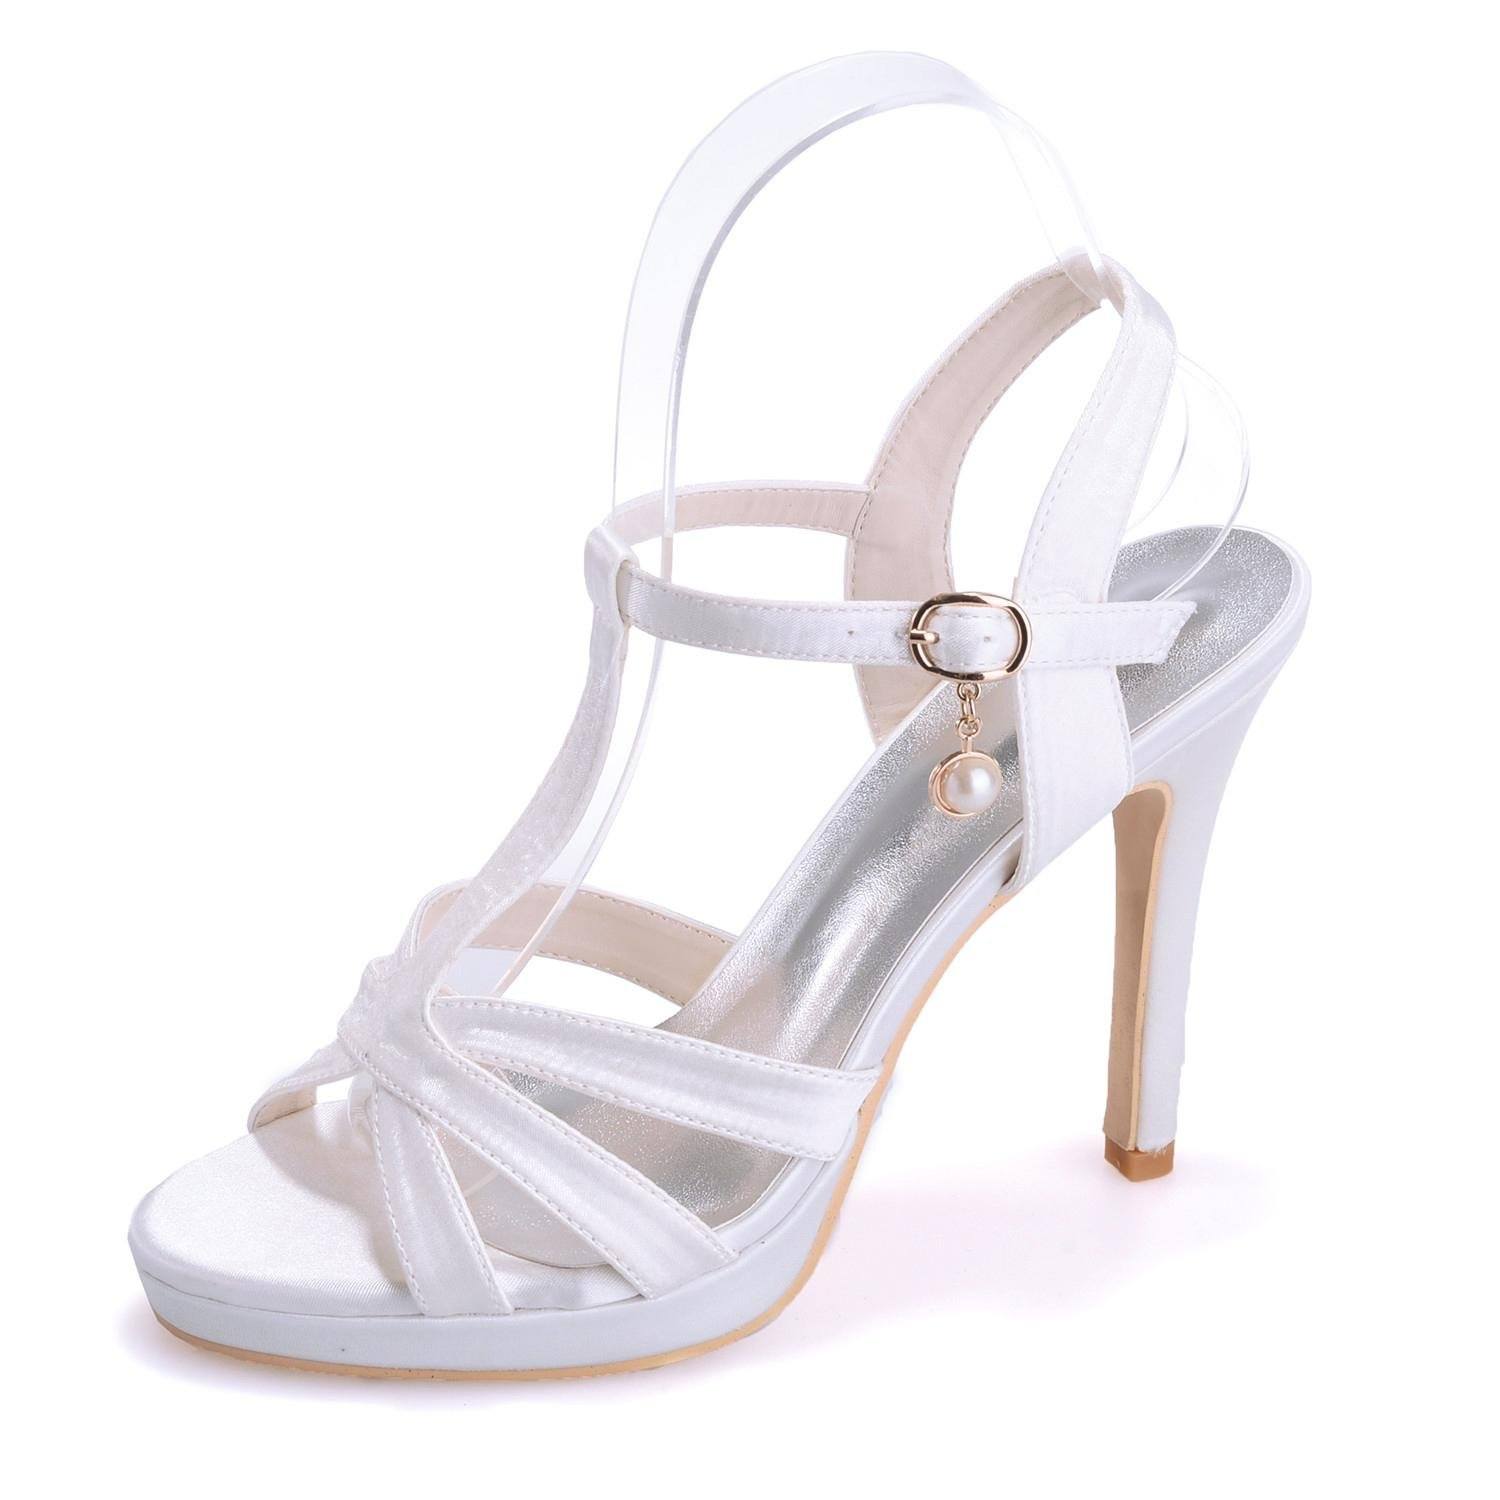 Elegant High shoes5915-19 Tacchi Alti da Donna da Donna/Casual Party Office E Carriera con, Champagne, 37